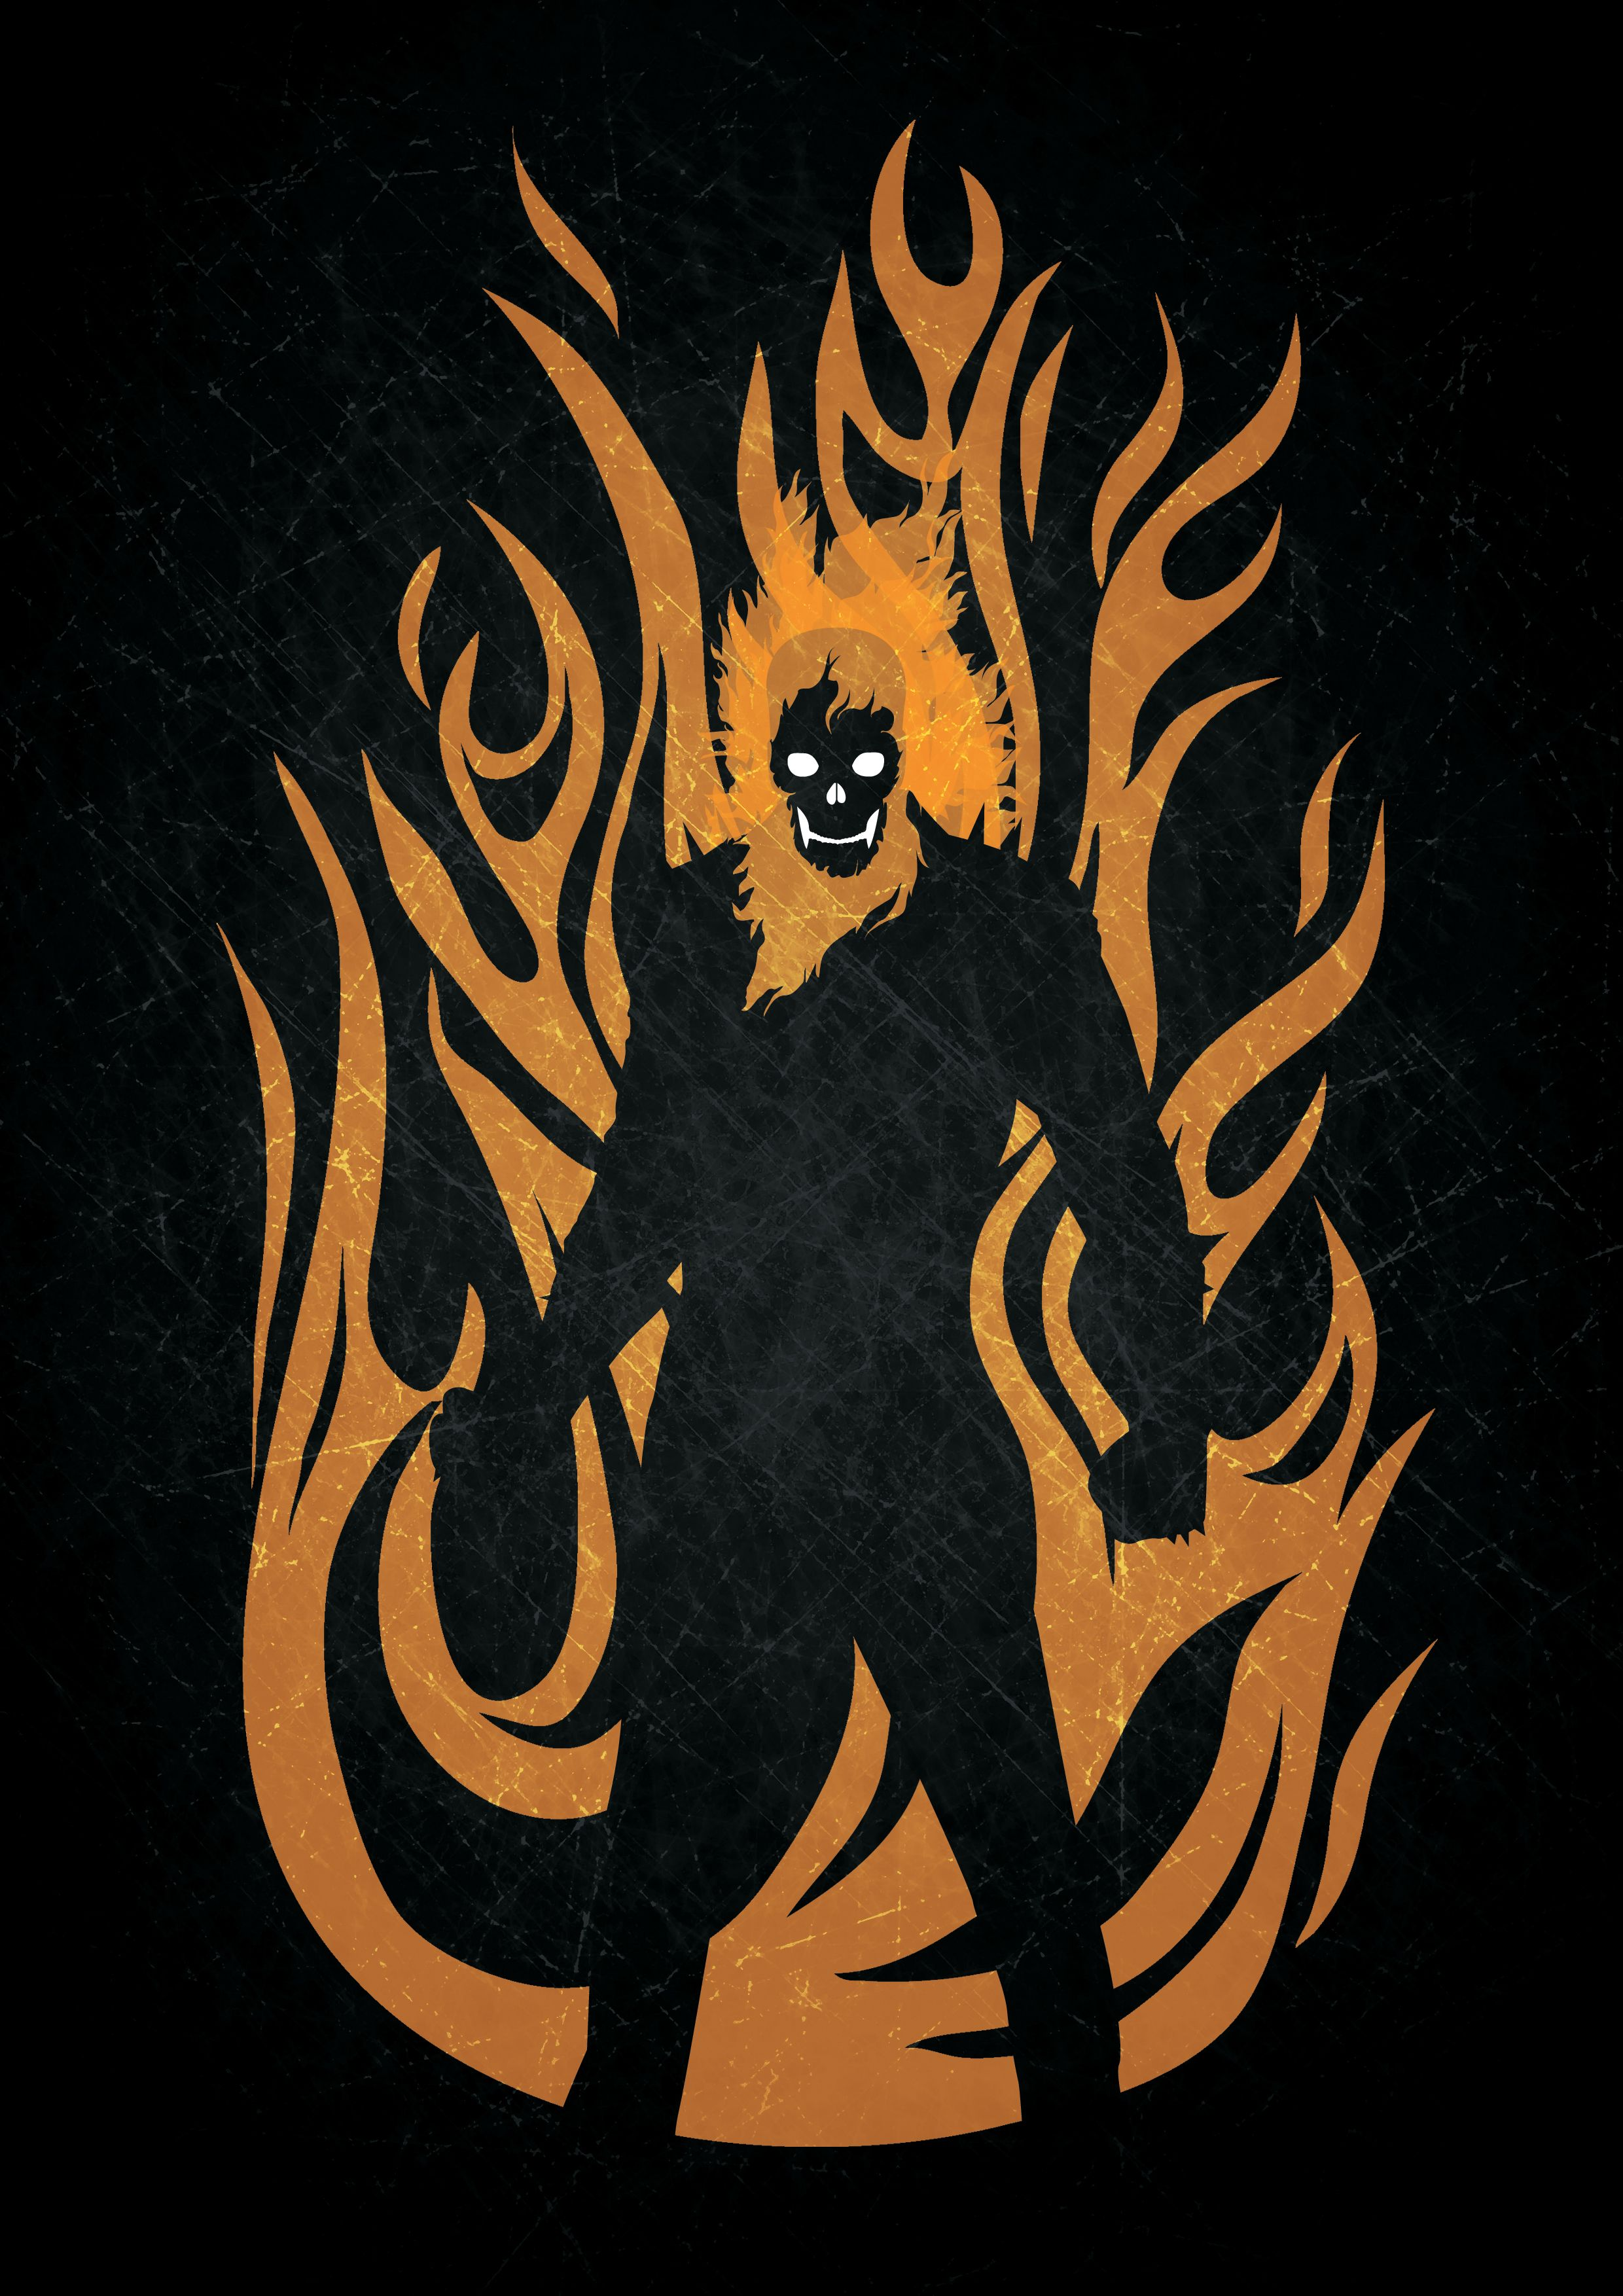 Cool Wallpaper Marvel Ghost Rider - a271c265494d193ade317345559c26ff  Graphic_807115.jpg